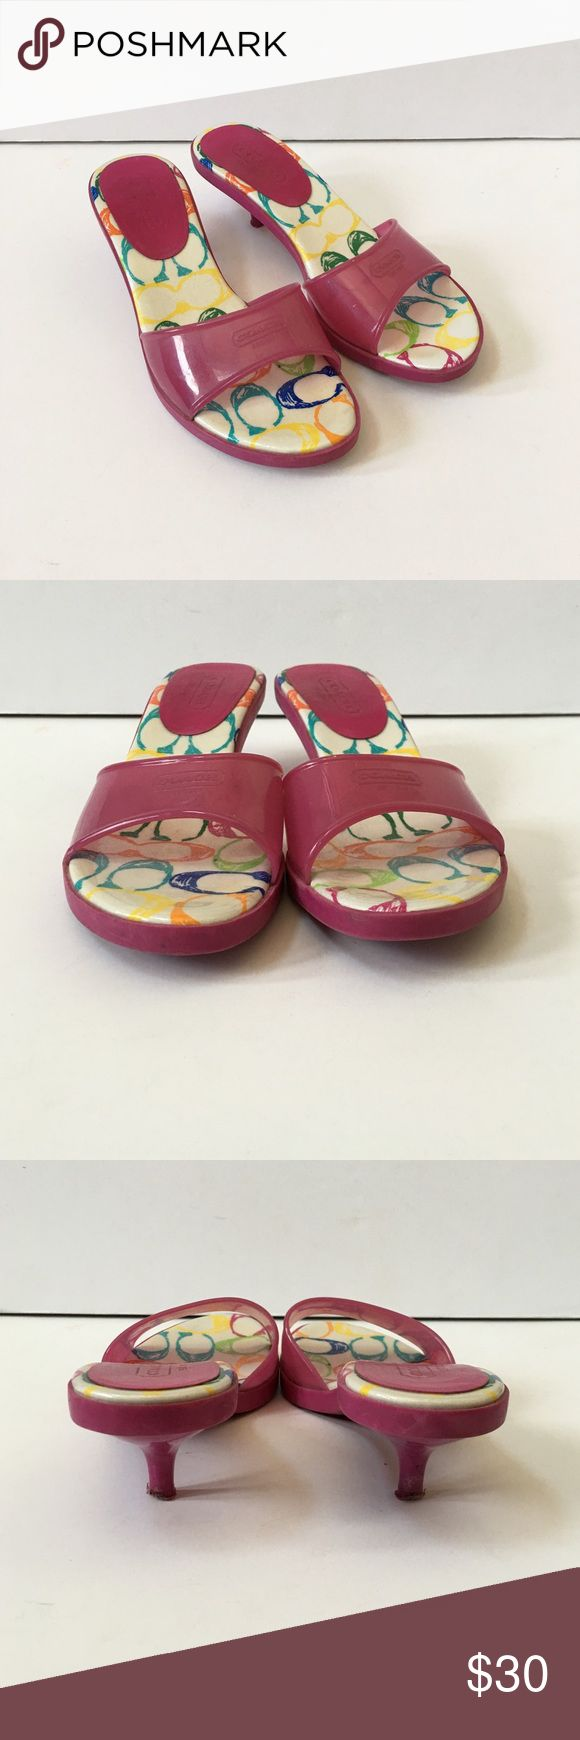 """Coach Jelly Kitten Heels Slip on sandal with 2"""" kitten heel. Great for lounging by the pool. Wear on bottom, heel and insole. No trades. Generous 30% bundle discount. Coach Shoes Sandals"""